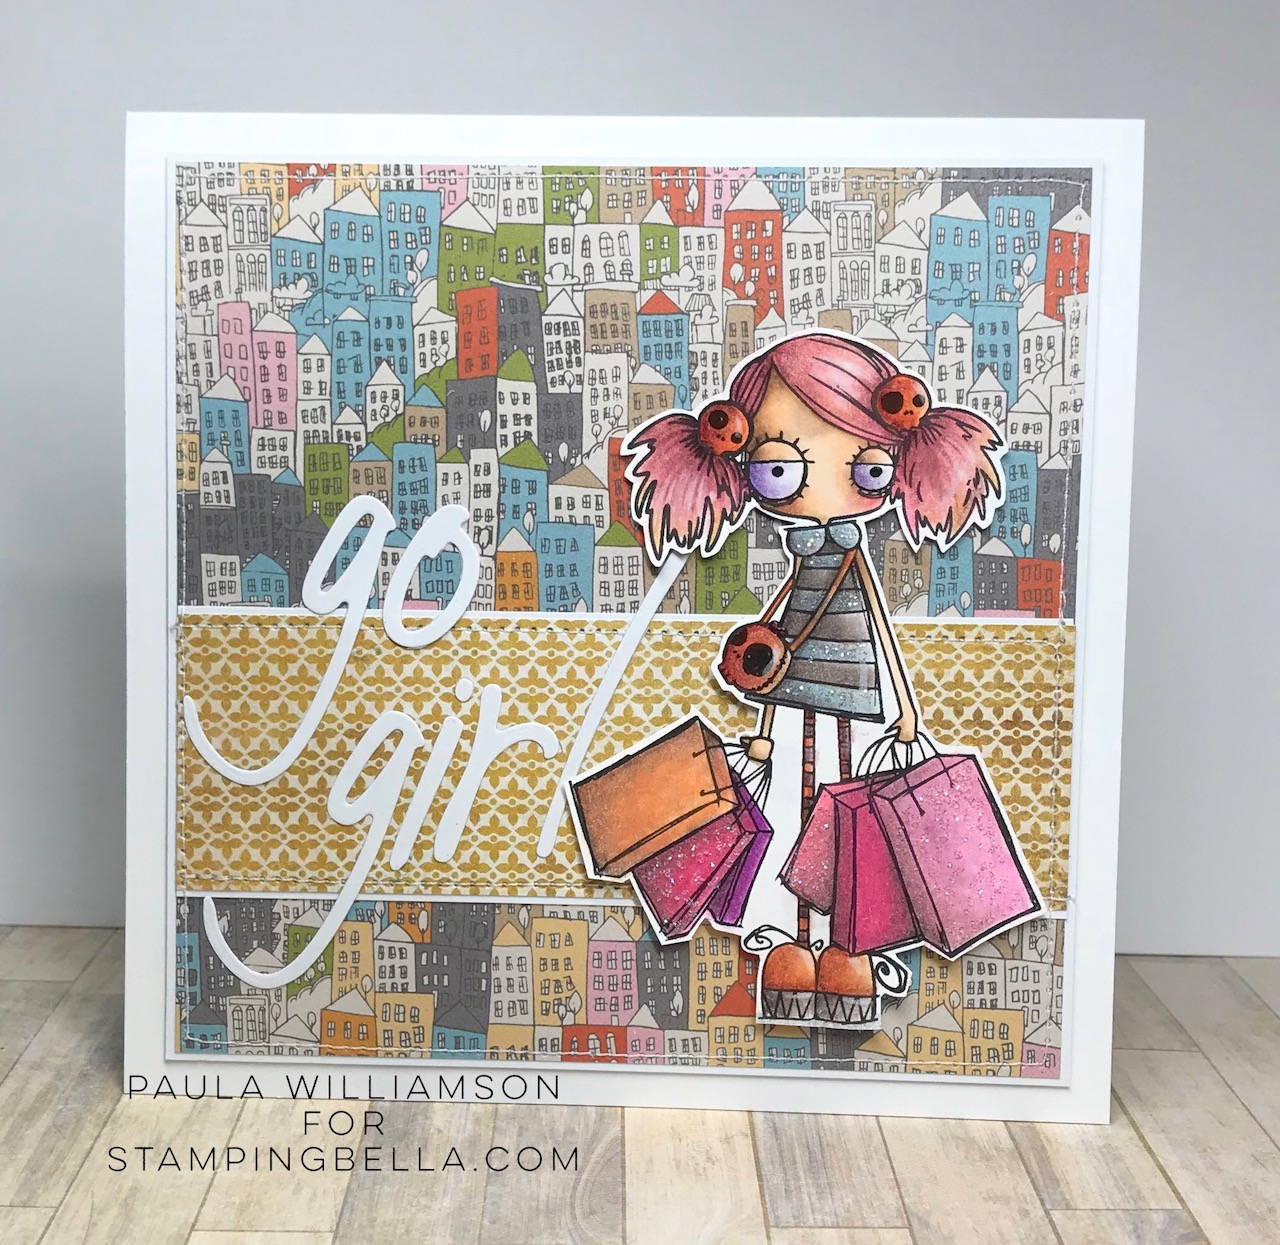 www.stampingbella.com: rubber stamp used ODDBALL SHOPPER, card by Paula Williamson